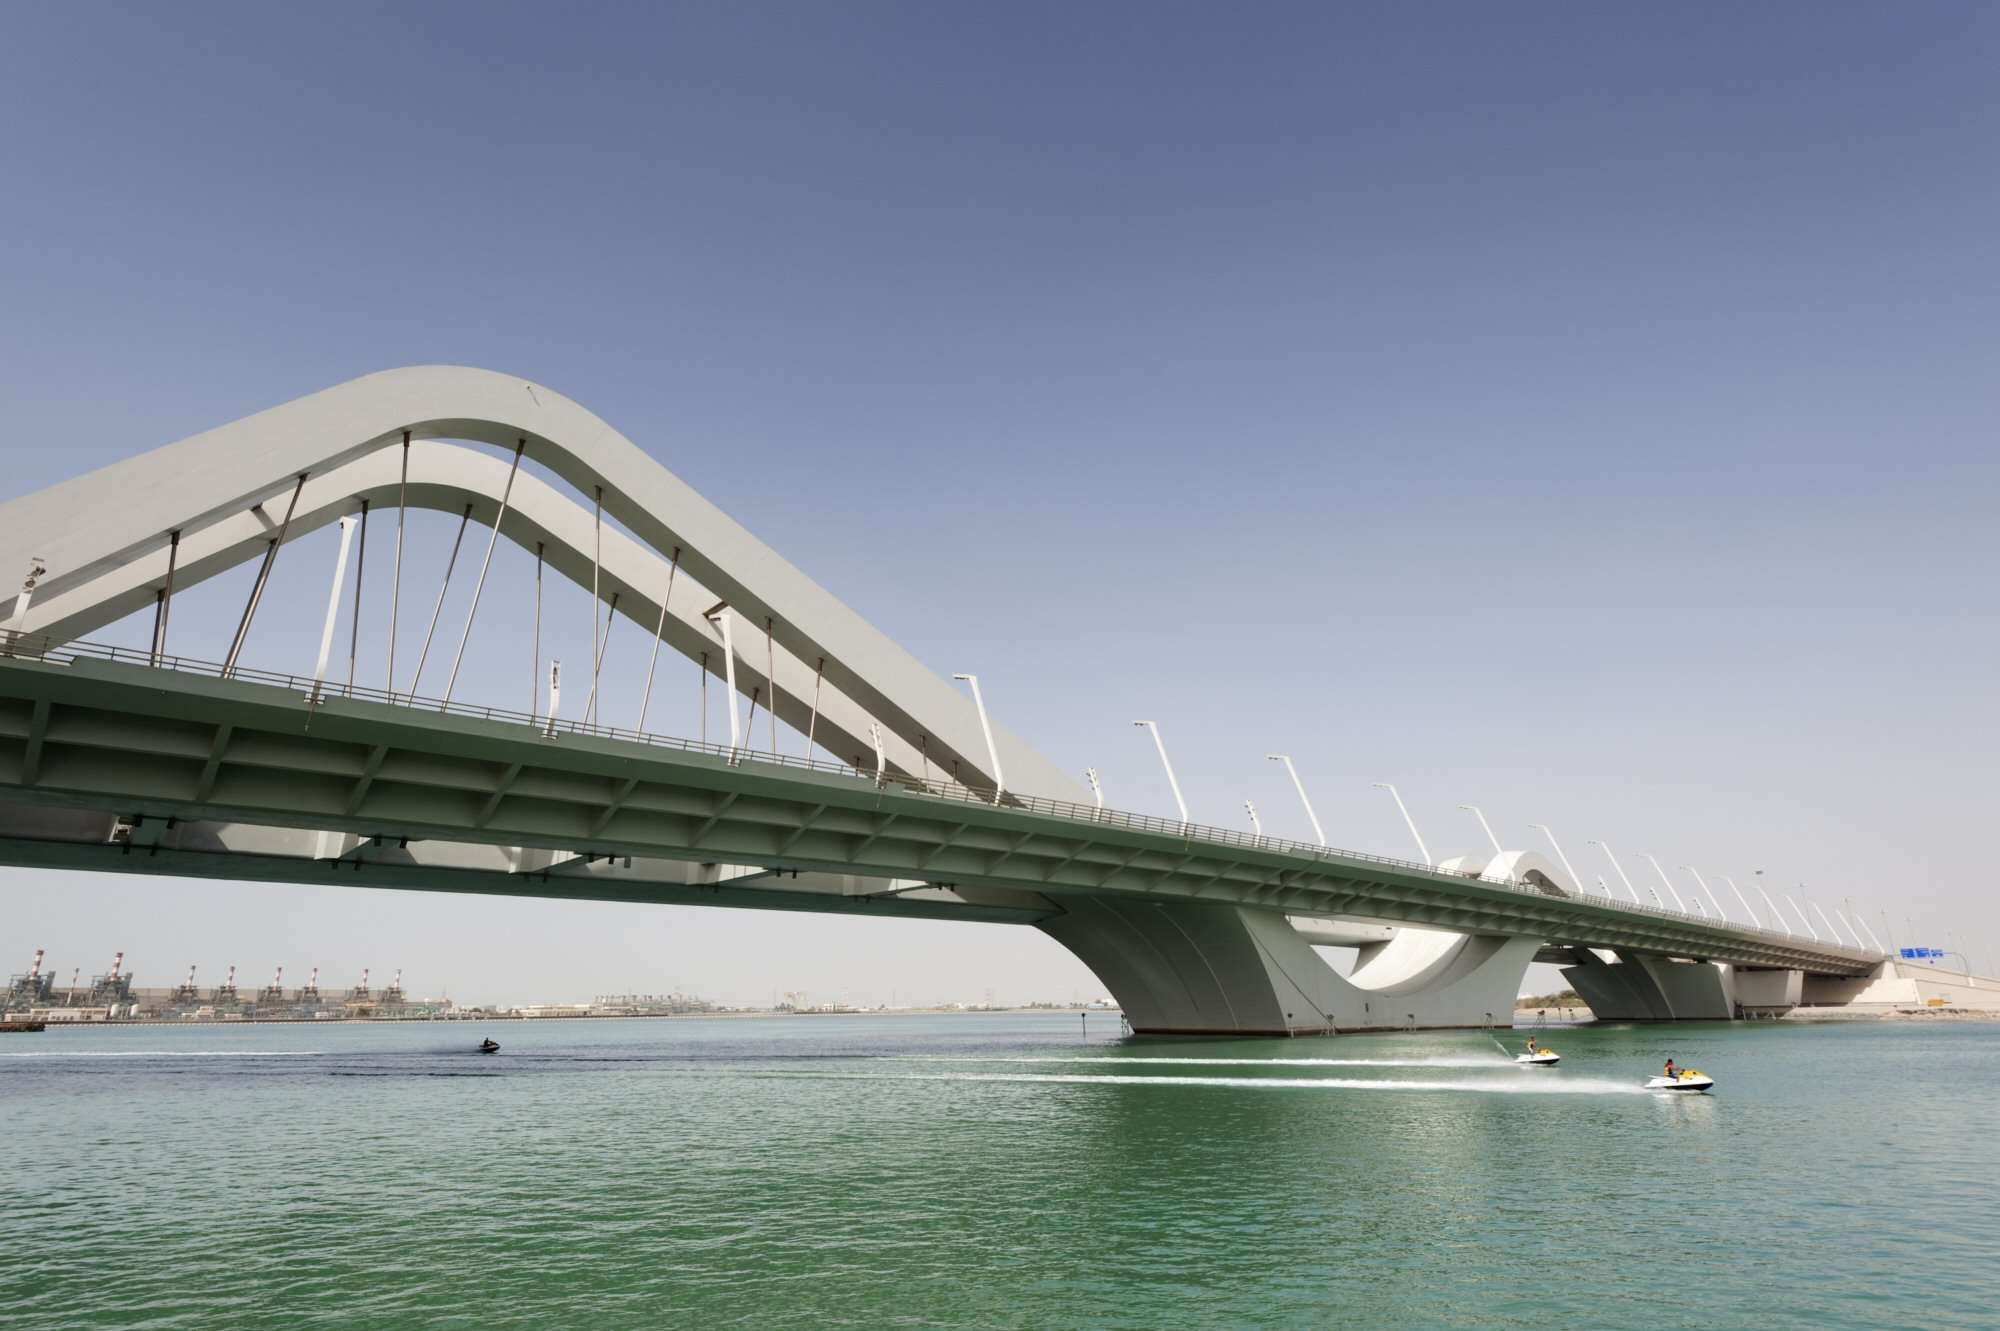 Highway bridge with cantilevered road decks suspended from symmetrical steel arches